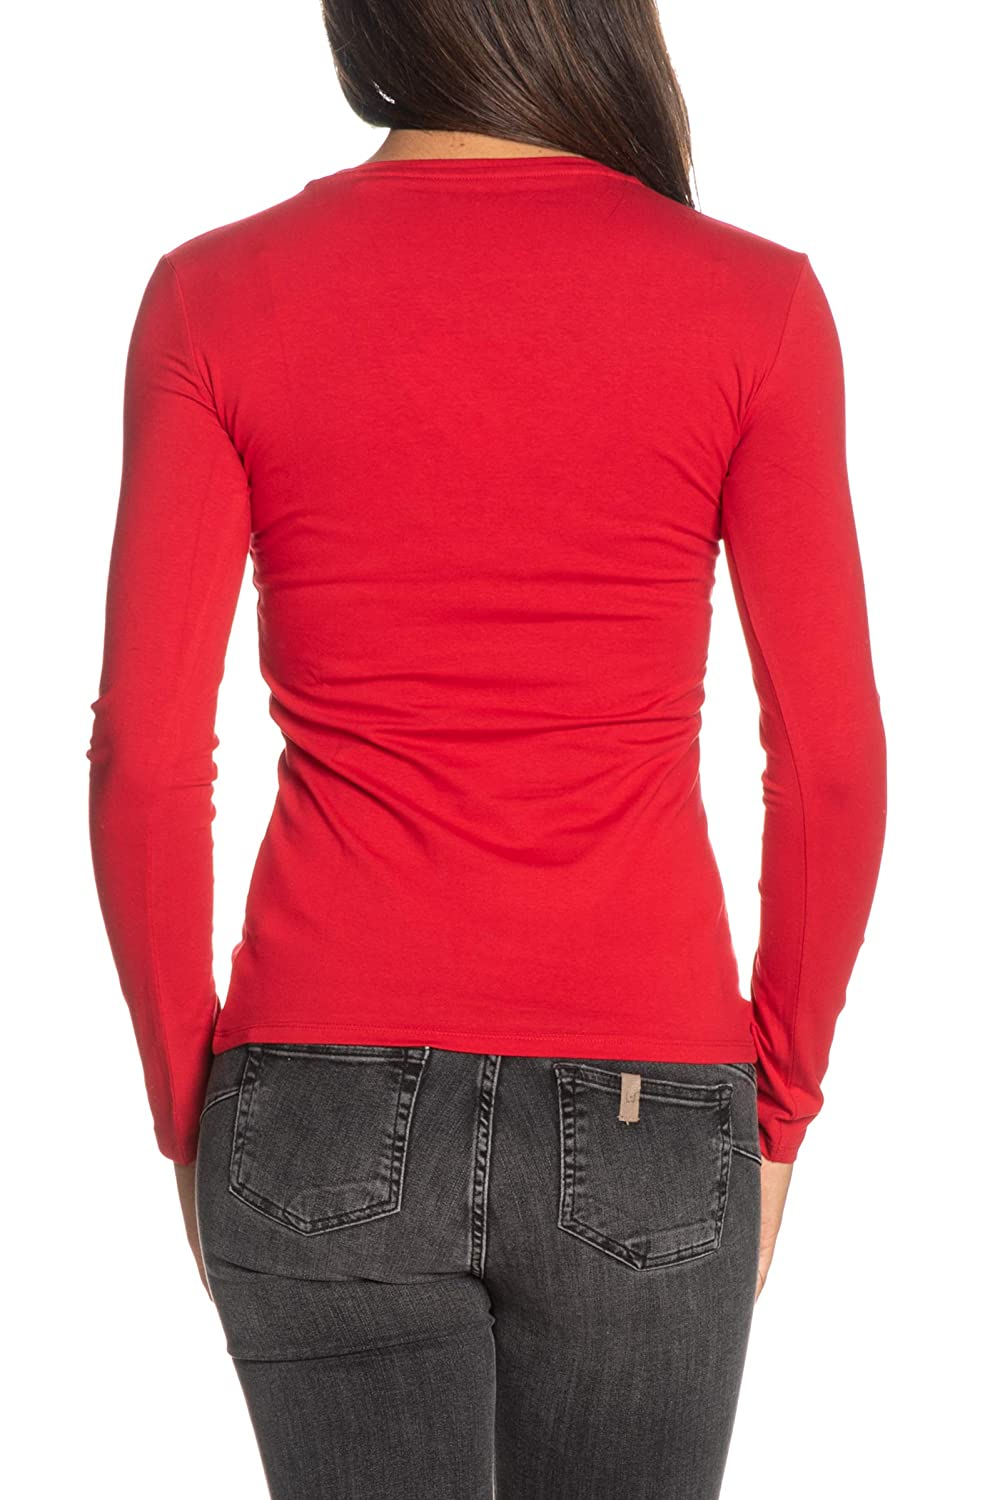 Guess T-Shirt Manica Lunga Donna Roses Tee Color w93i90 j1300